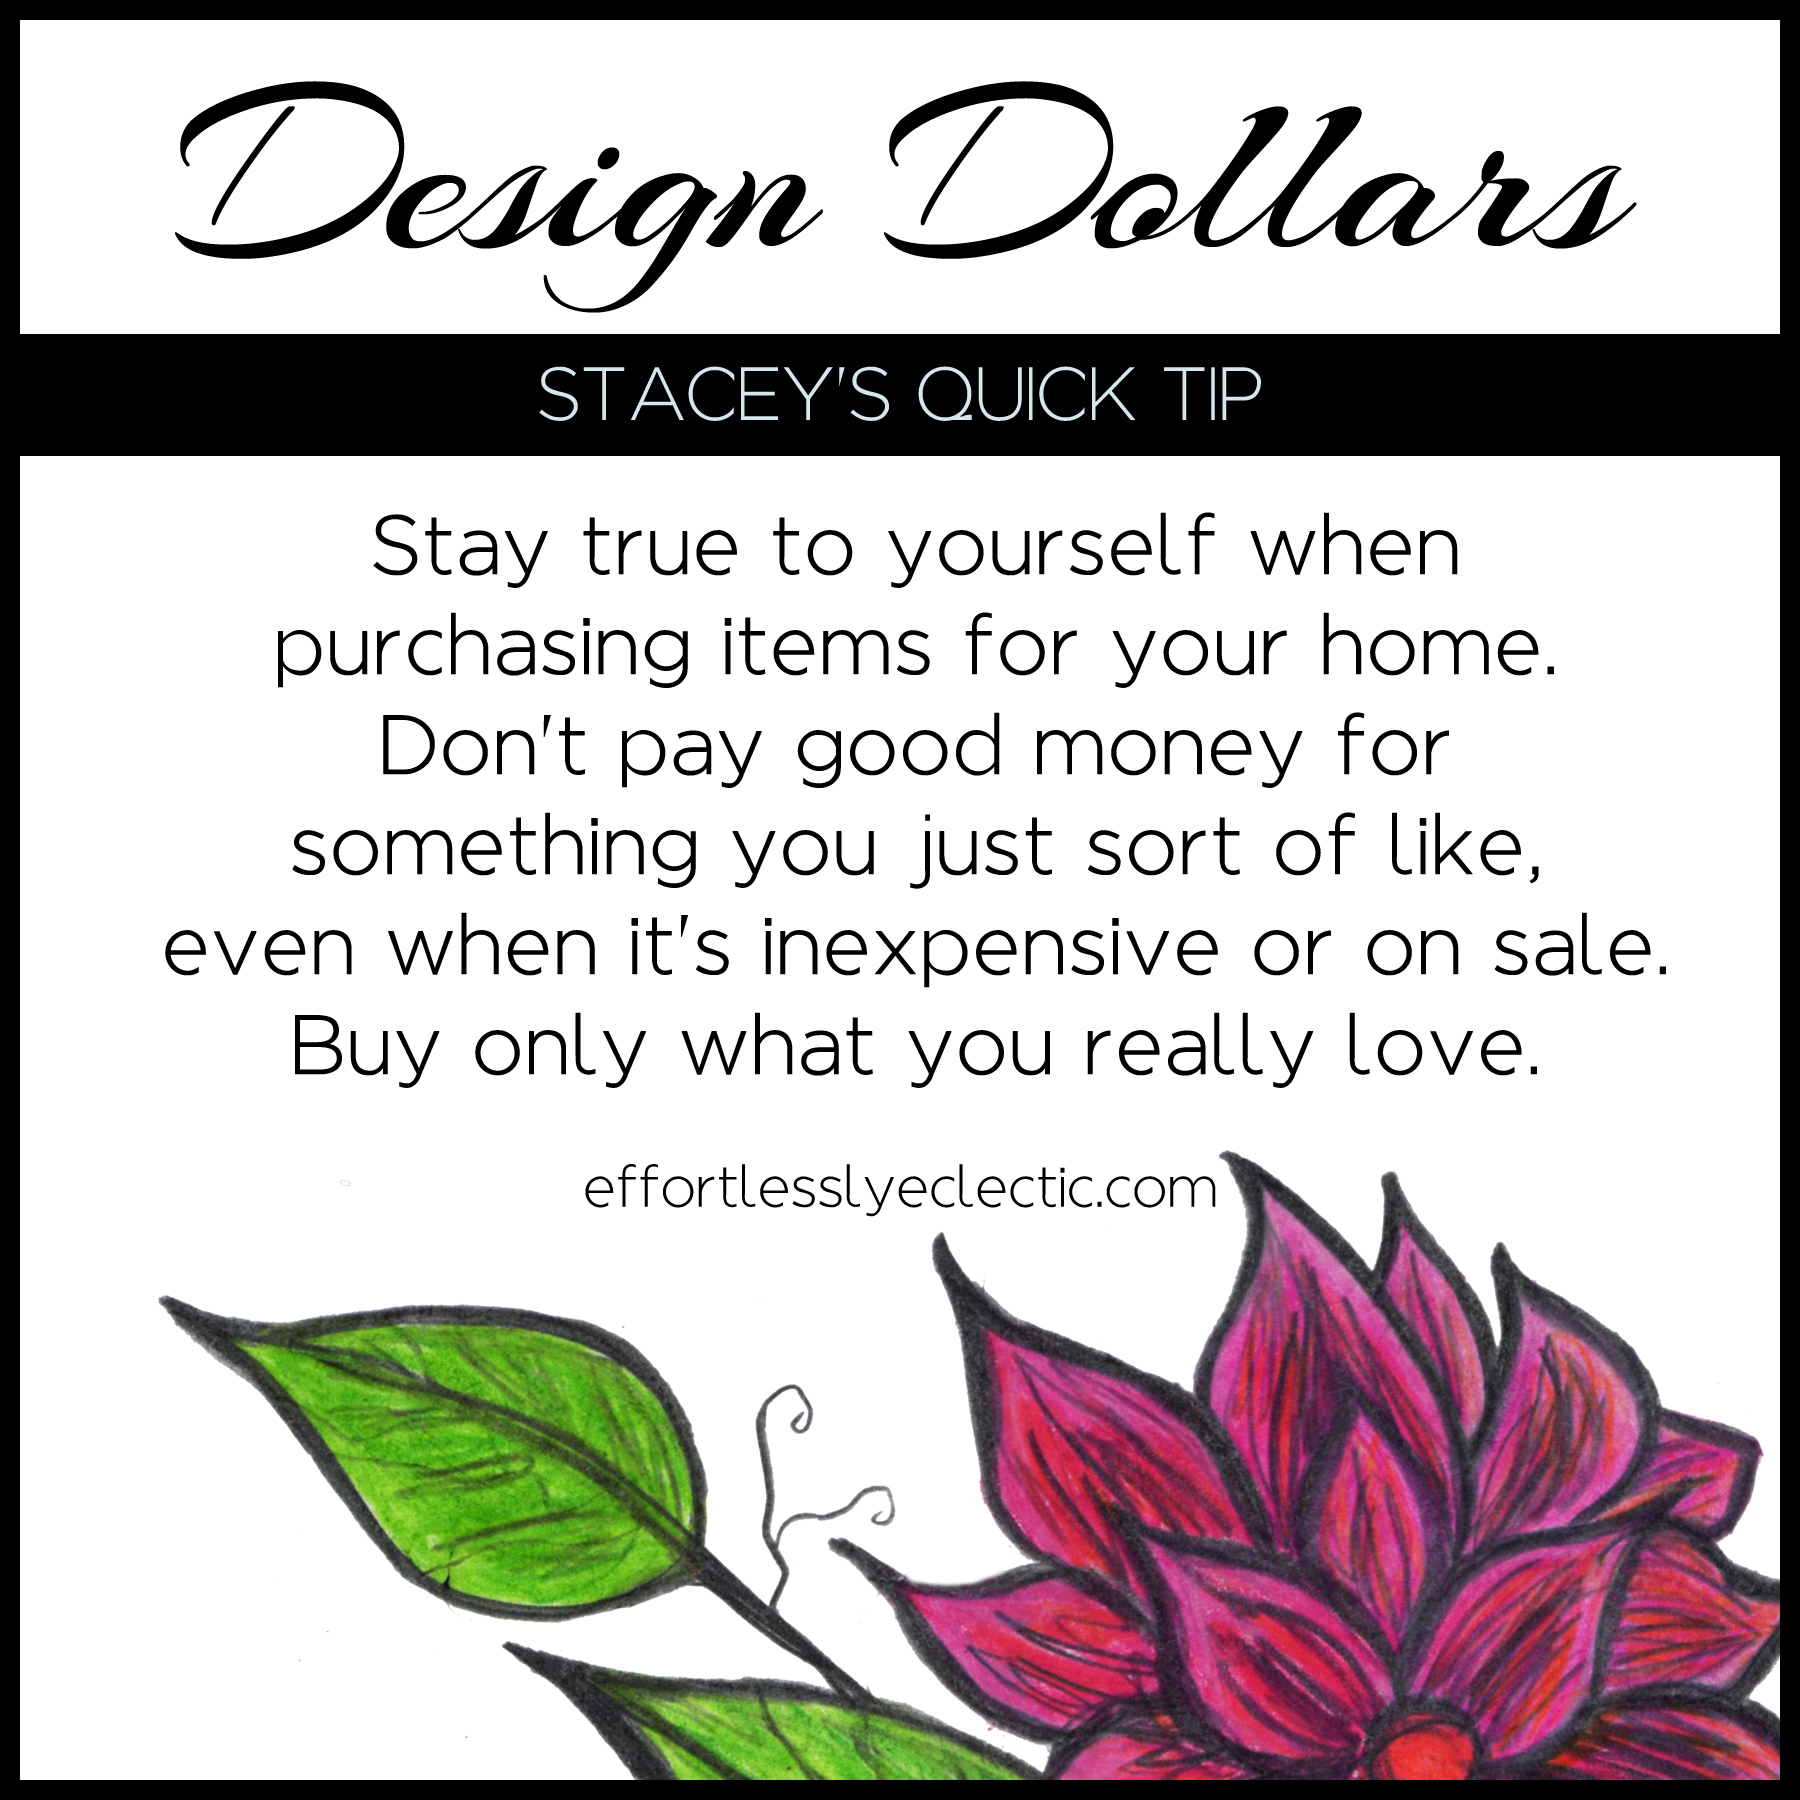 Design Dollars - A home decorating tip about how to choose decor